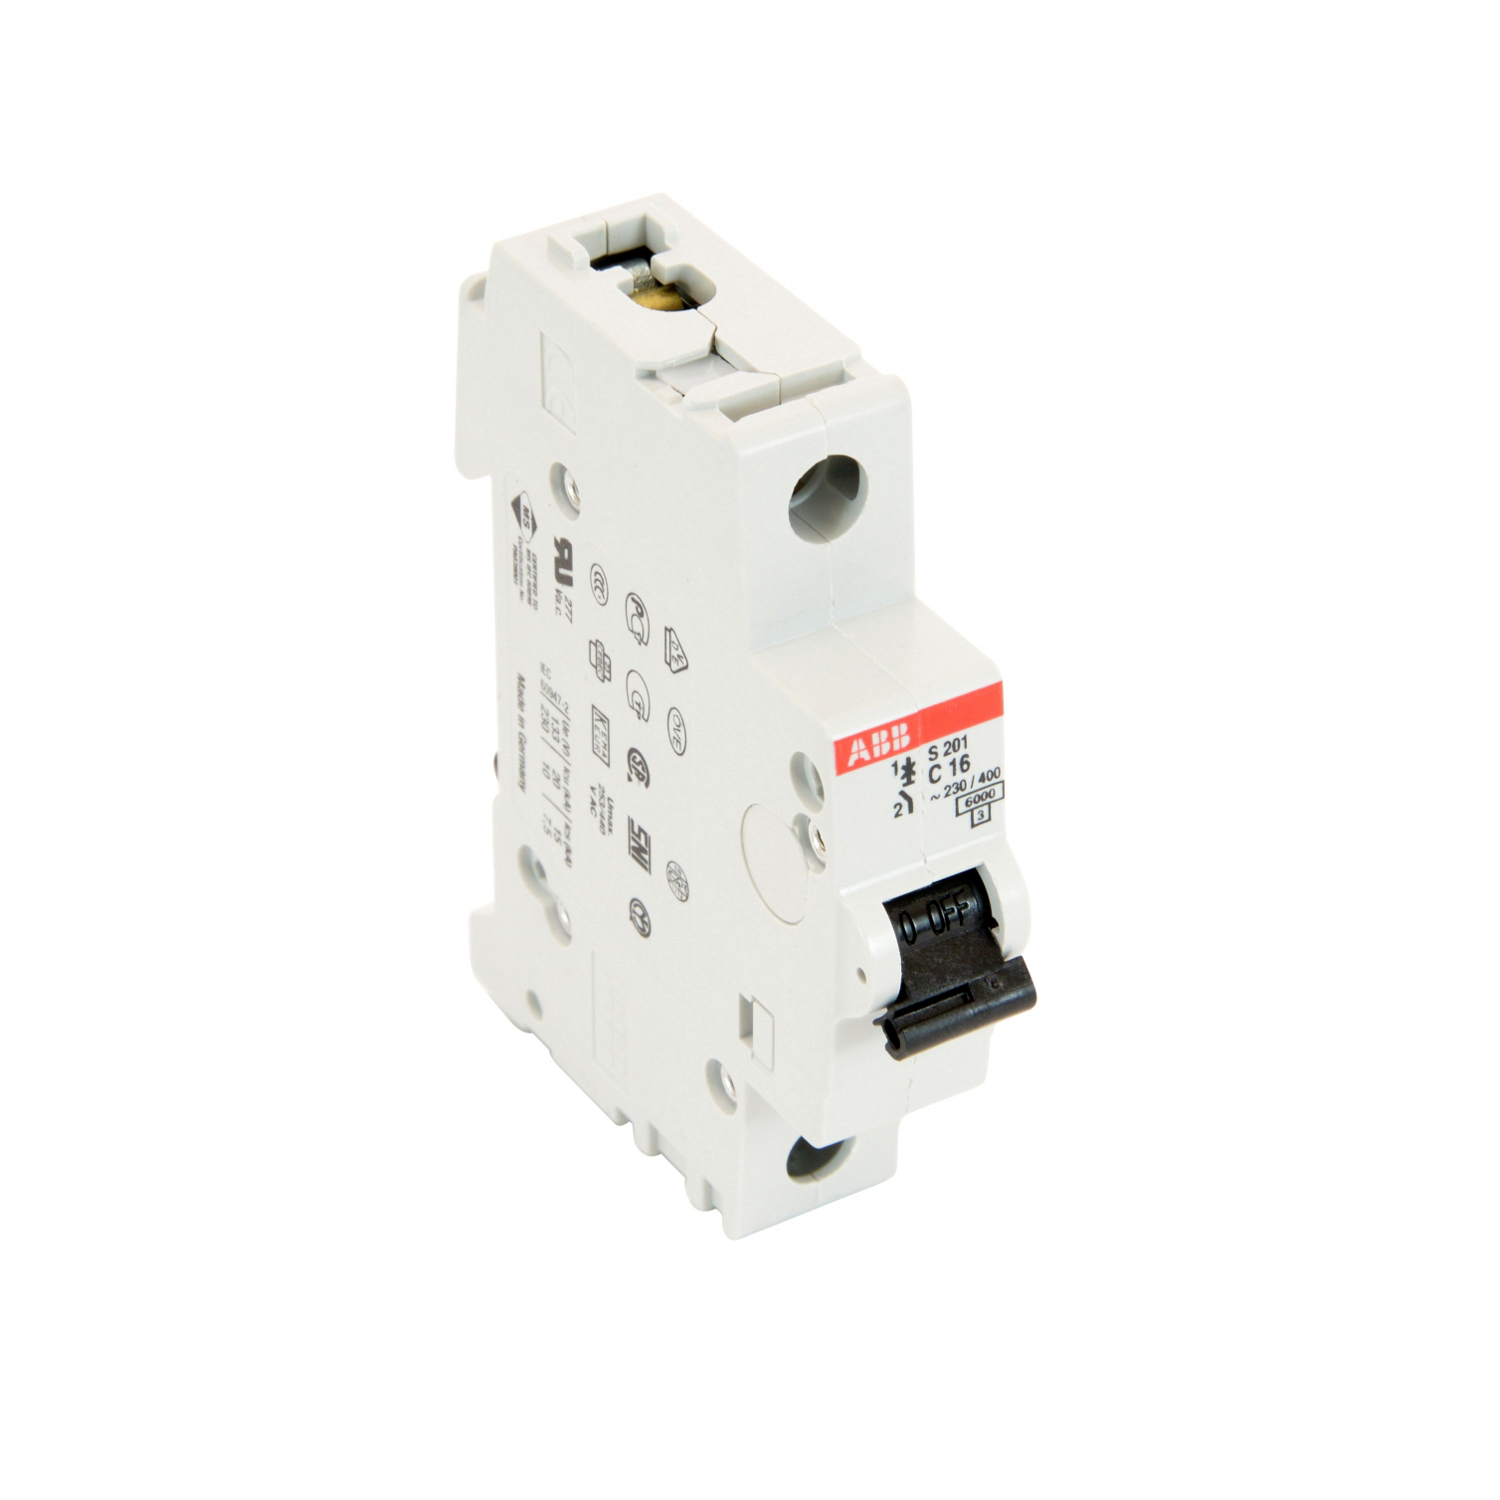 ABB S201-C20 1 pole, 20 amps rated at 480Y/277 VAC, UL 1077 series miniature circuit breaker with thermal-magnetic trip device, C trip curve, and 6kA interrupt current rating